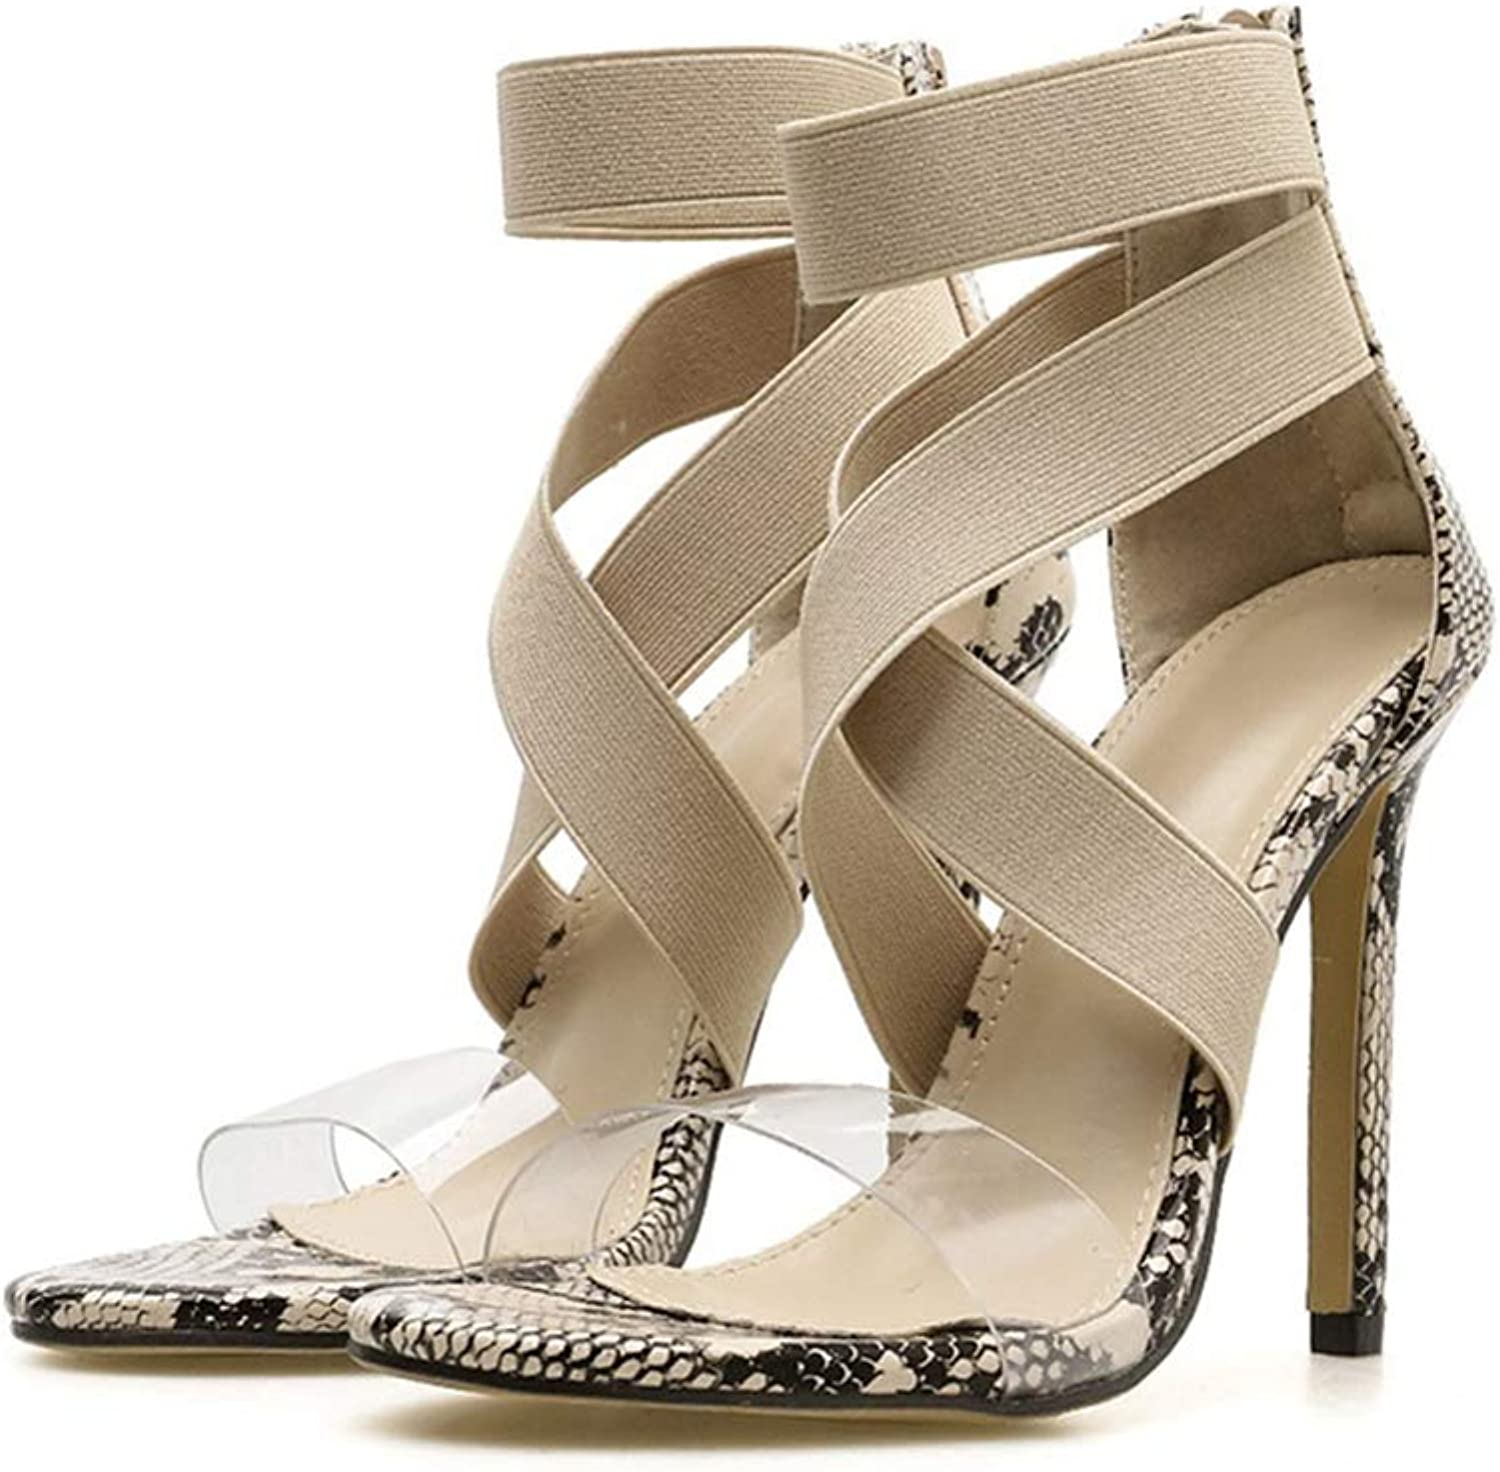 Women shoes High Heeled Summer Sandals Heels Women Party shoes Casual Sexy Pumps Beach Sandals Plus Size 35-39